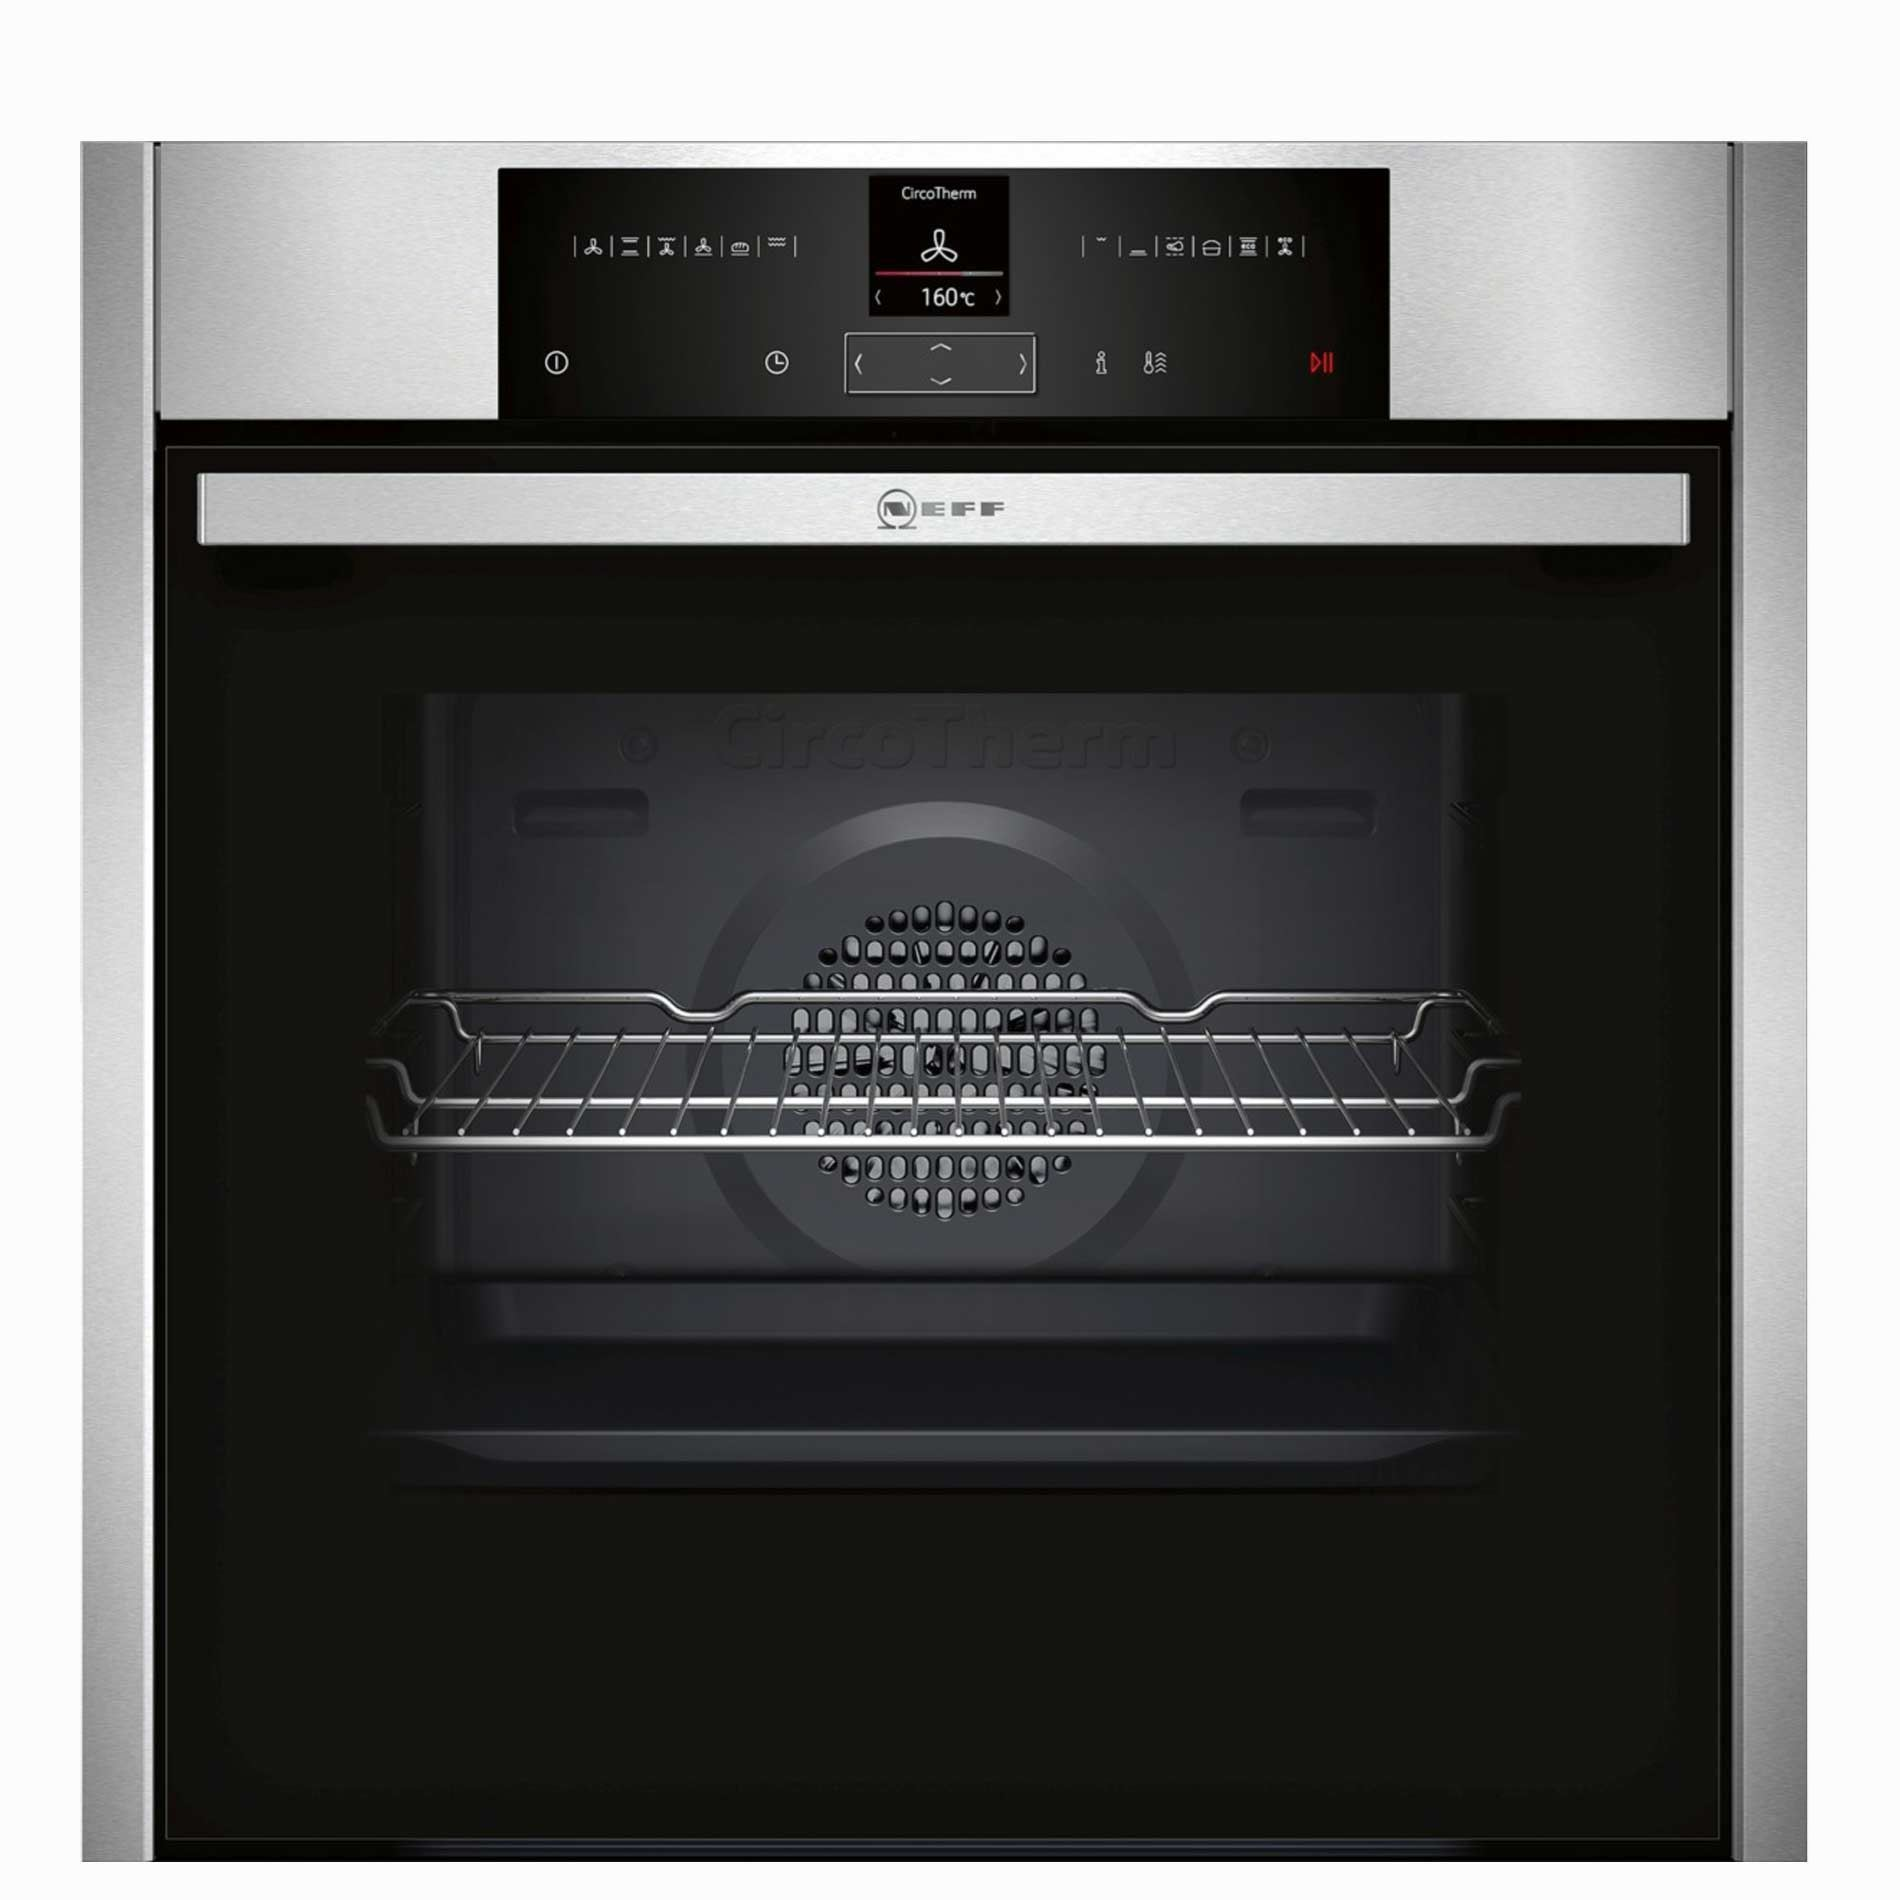 Neff b25cr22n1b single pyrolytic oven appliance source - Neff single oven with grill ...